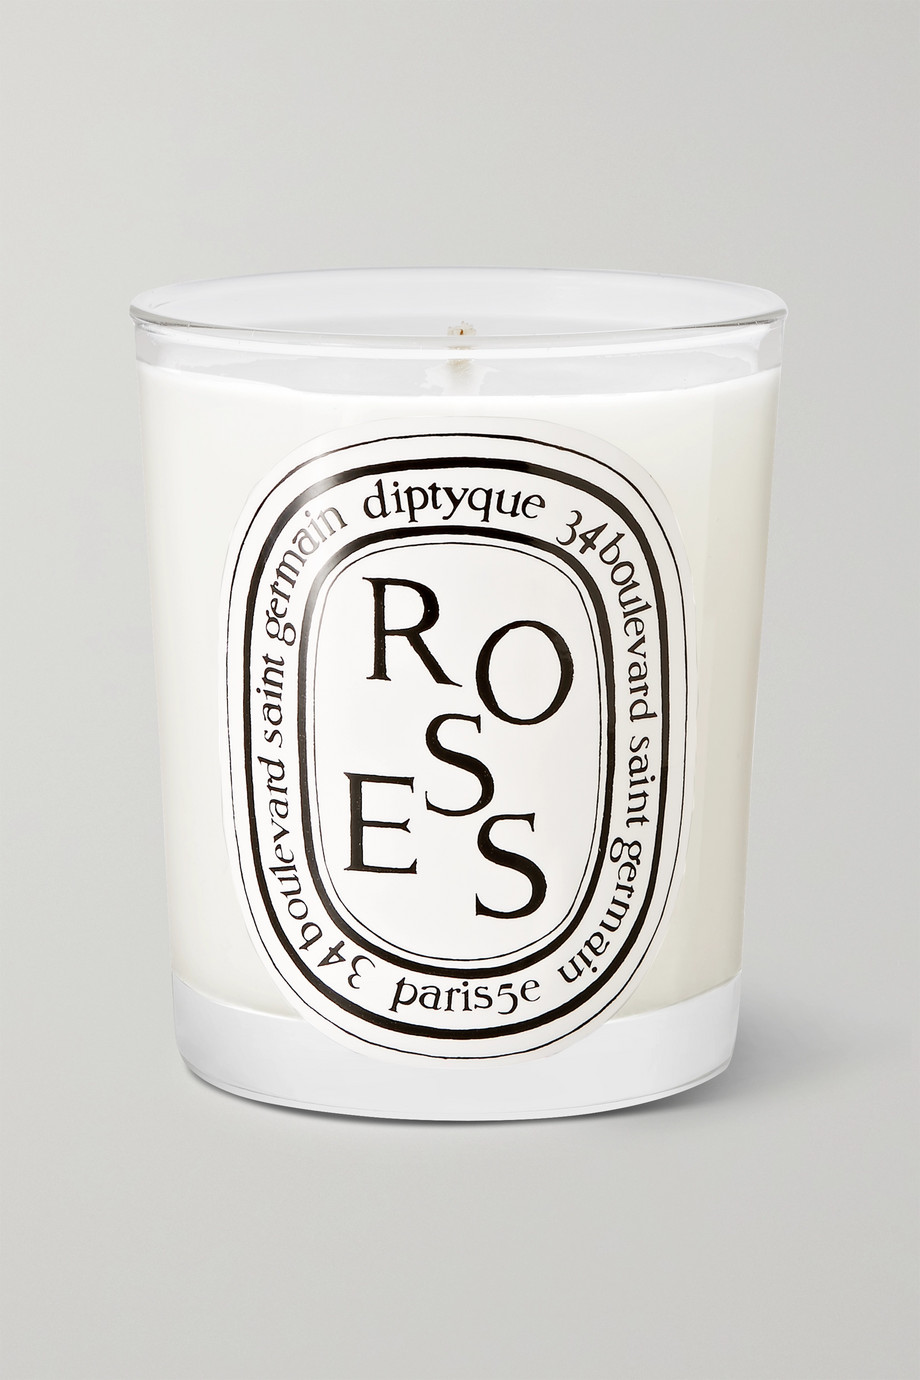 Diptyque Roses scented candle, 190g